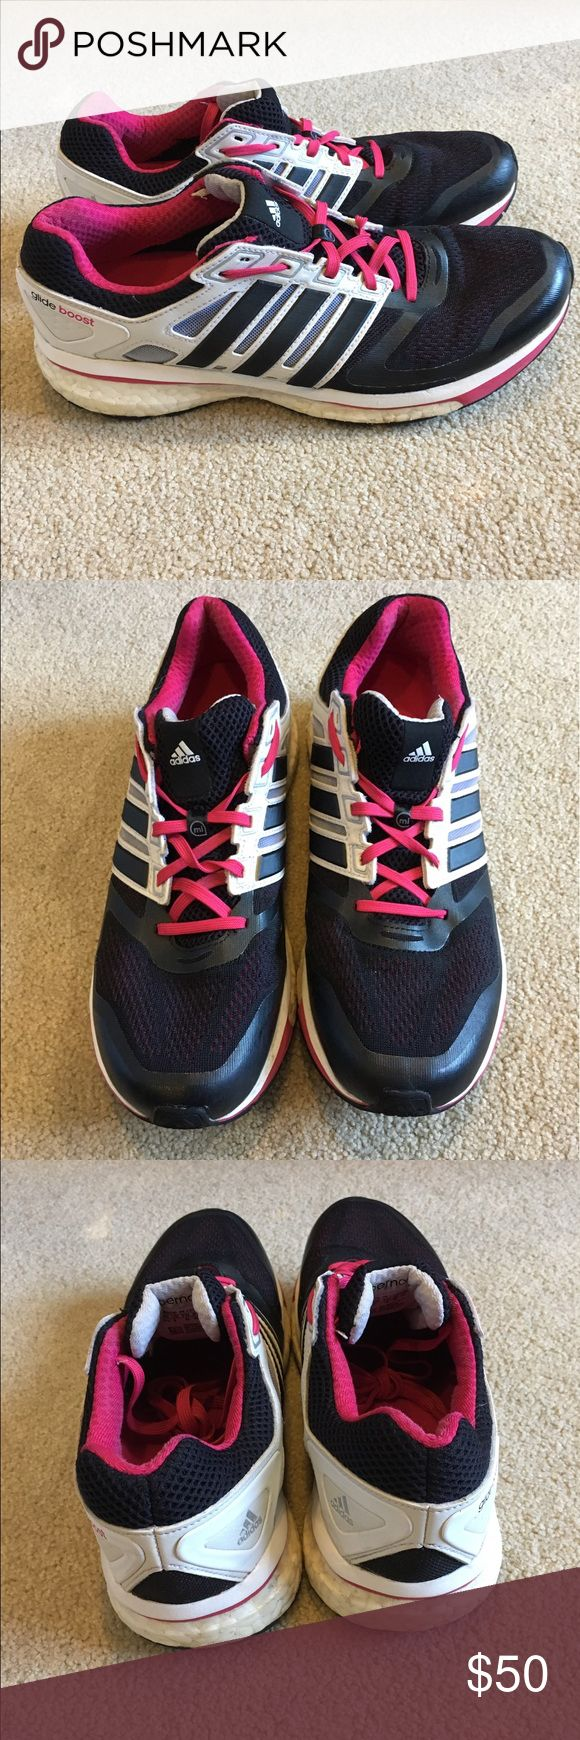 Adidas Glide Boost. (Women's 9.5) Adidas Glide Boost. Women's 9.5. Super comfortable pair of shoes. Overall great condition and has plenty of life left. adidas Shoes Sneakers